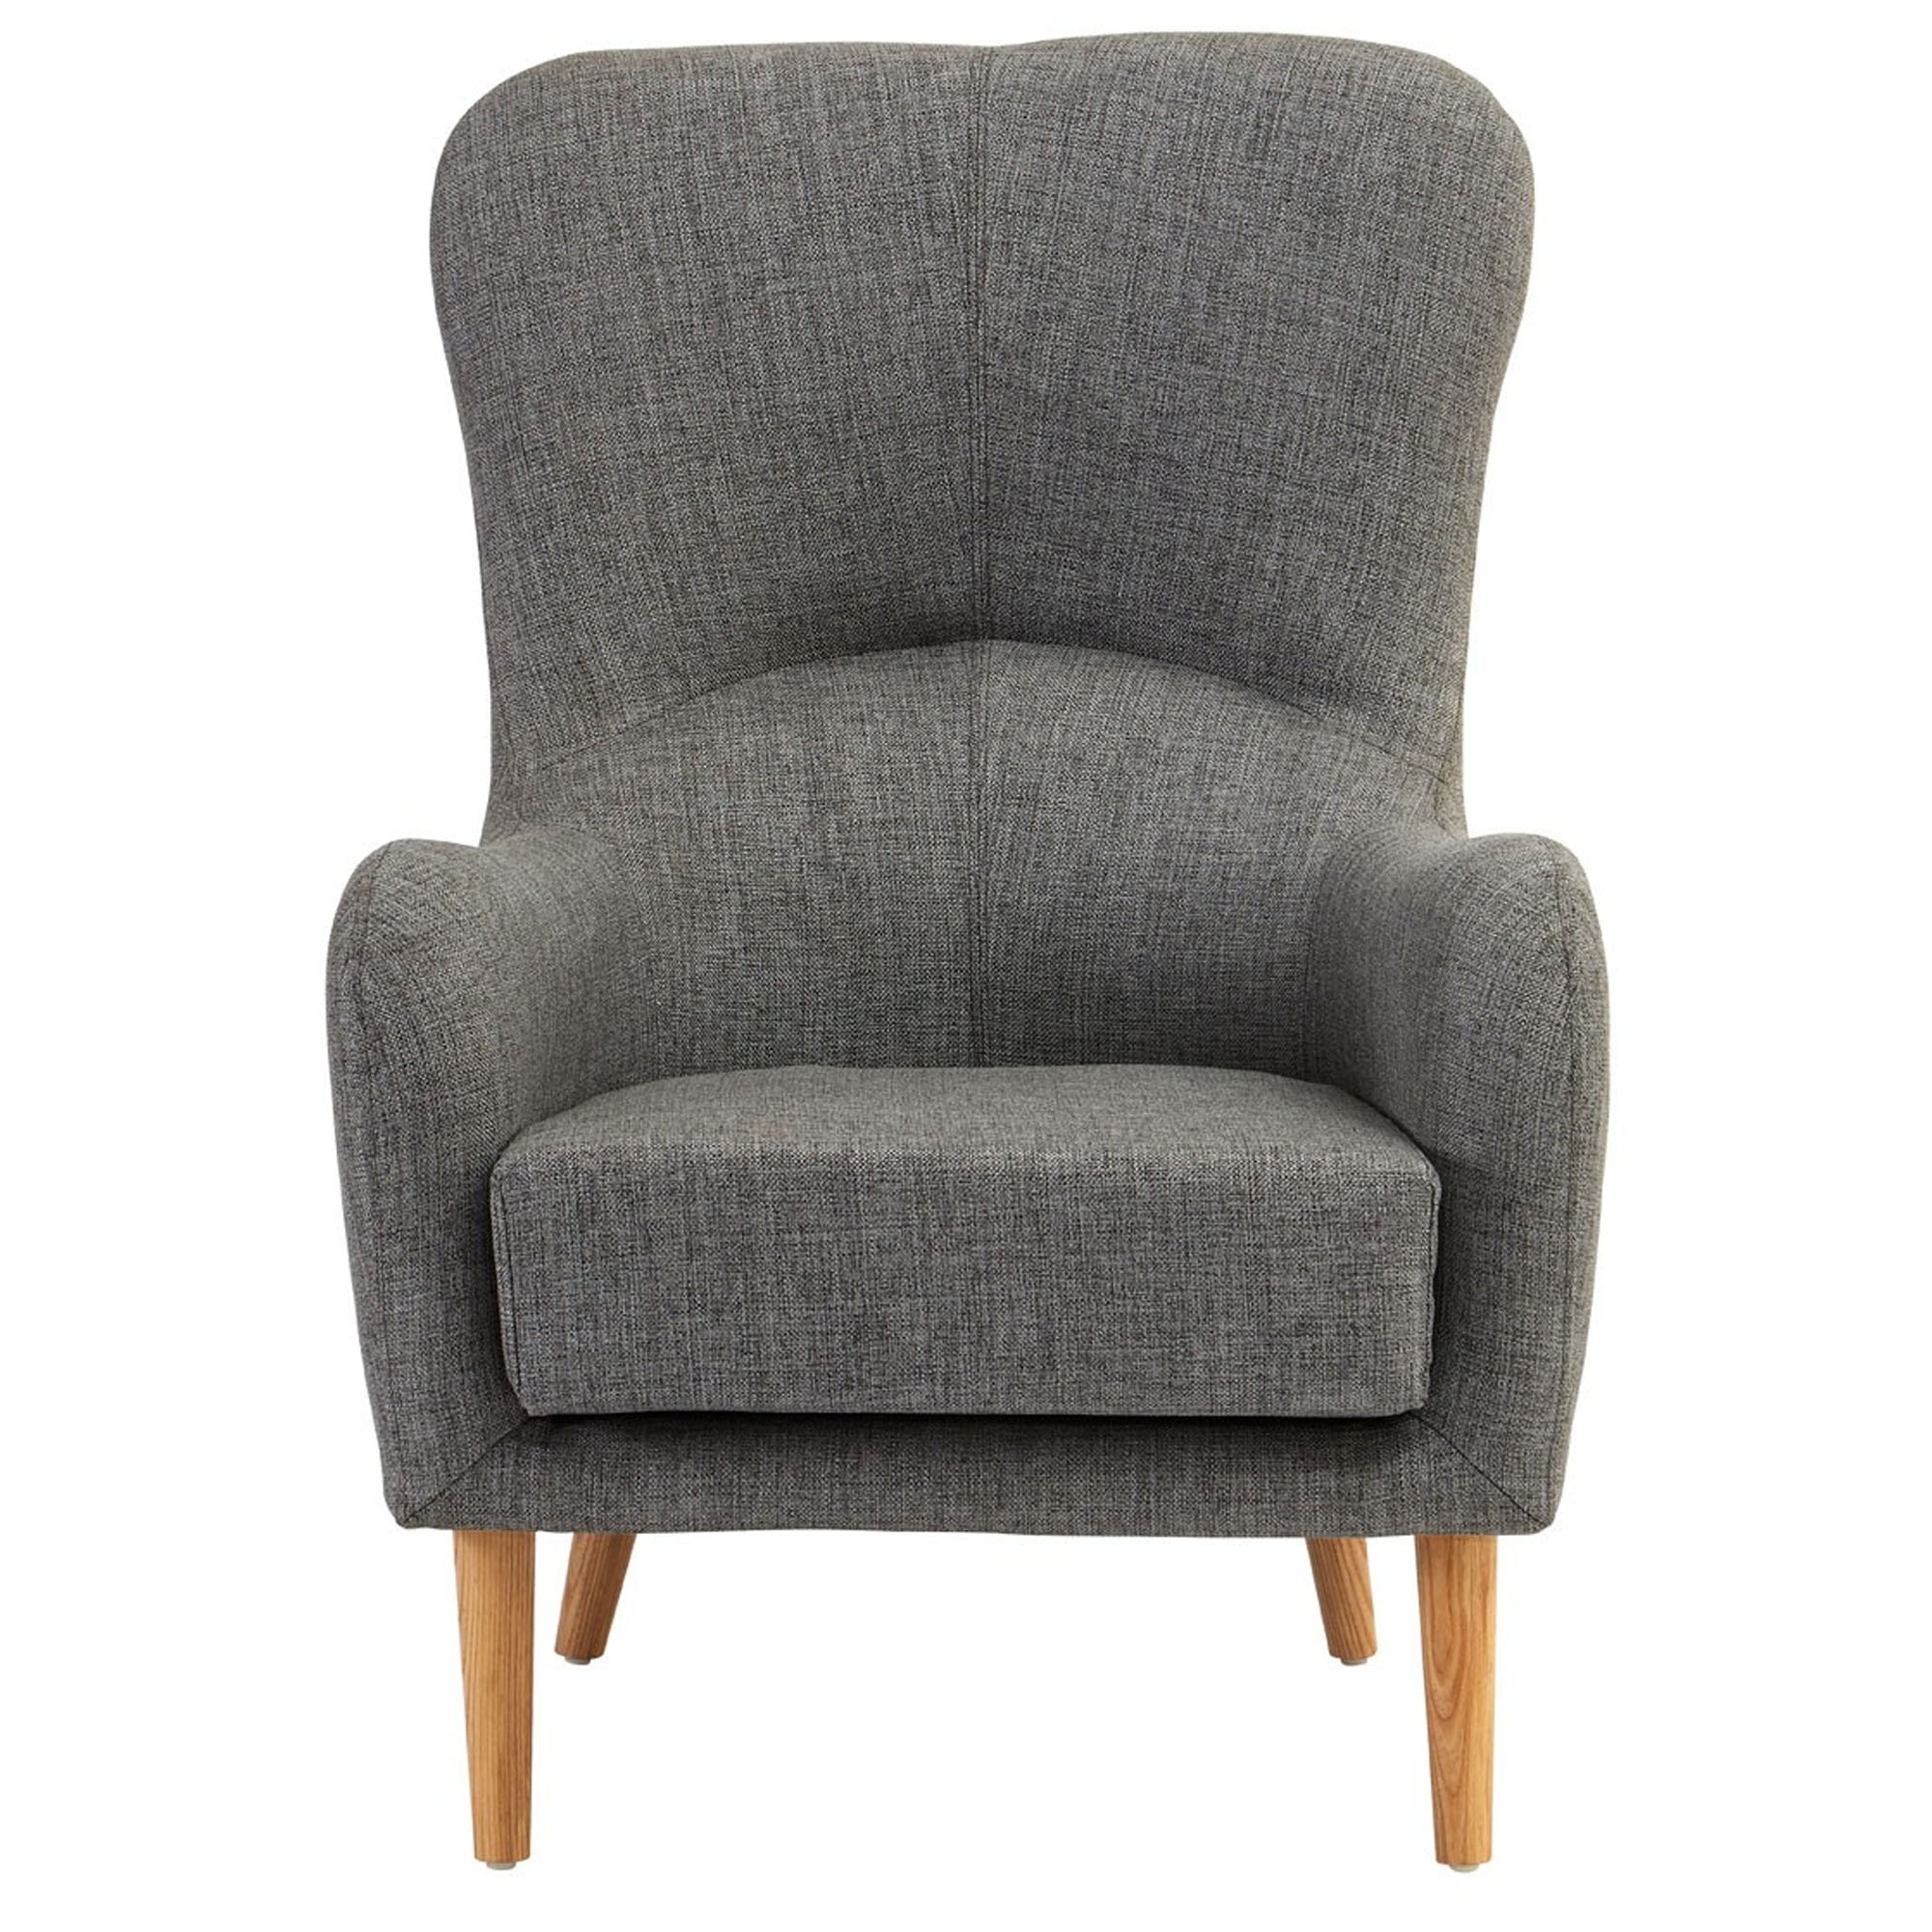 Superieur Kolding Grey Fabric Chair